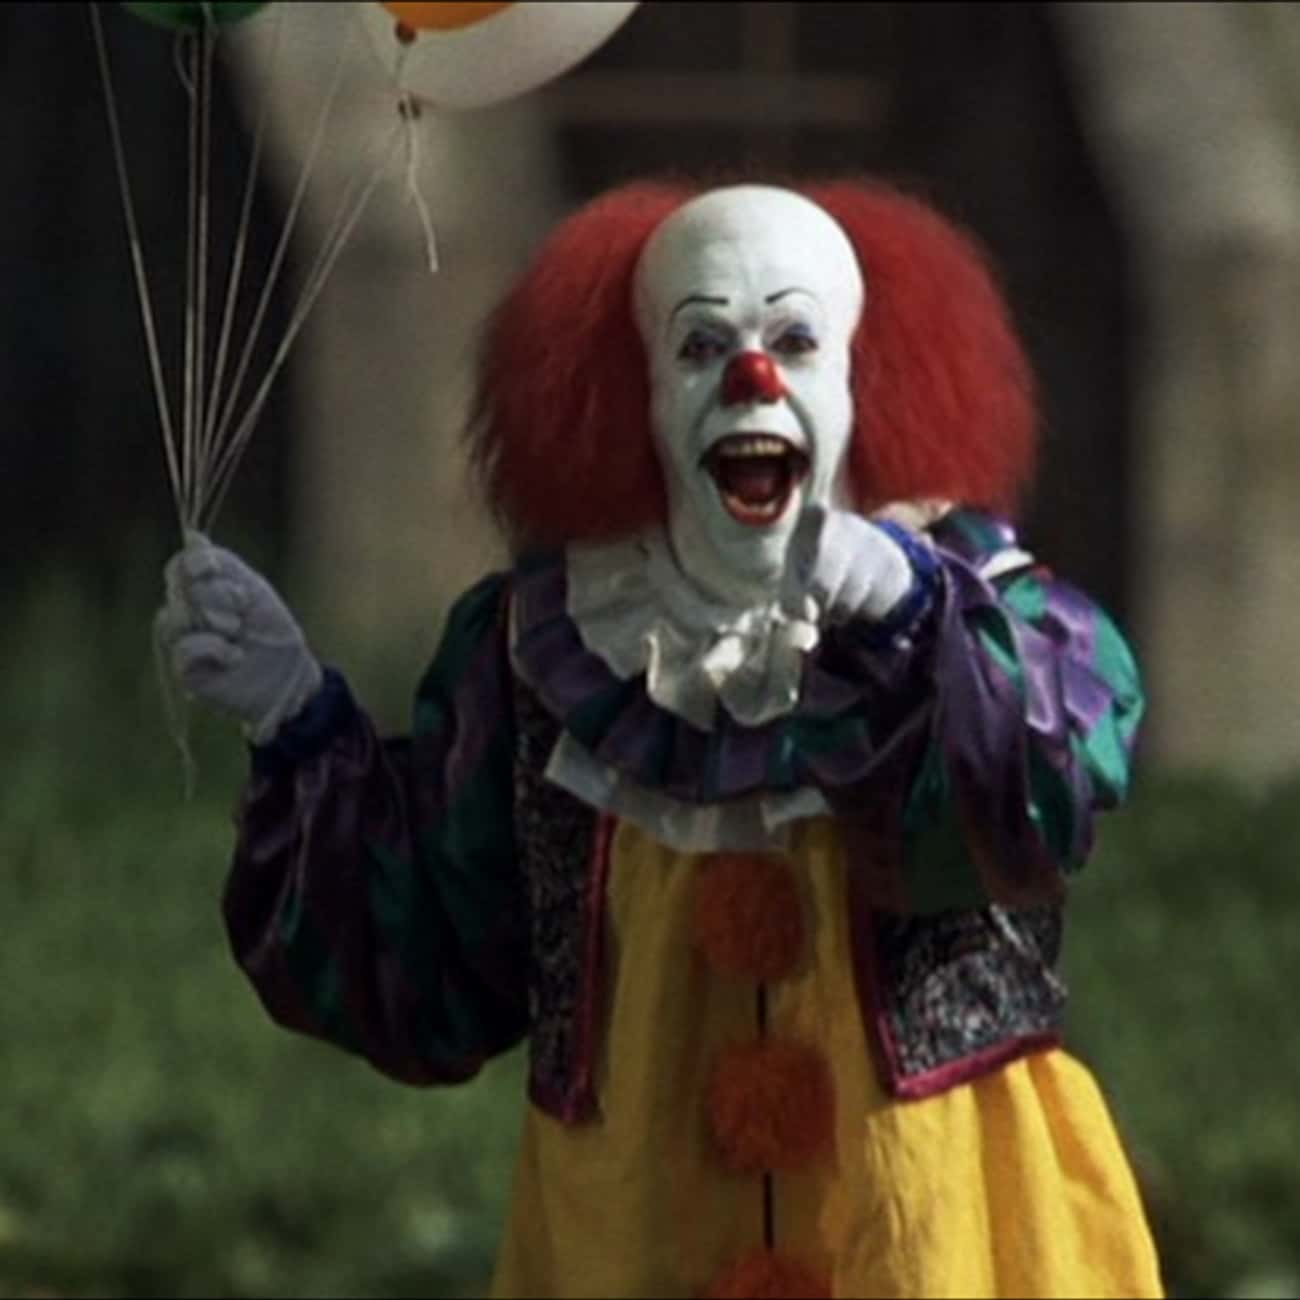 Pennywise the Dancing Clown is listed (or ranked) 3 on the list The Greatest '90s Horror Villains